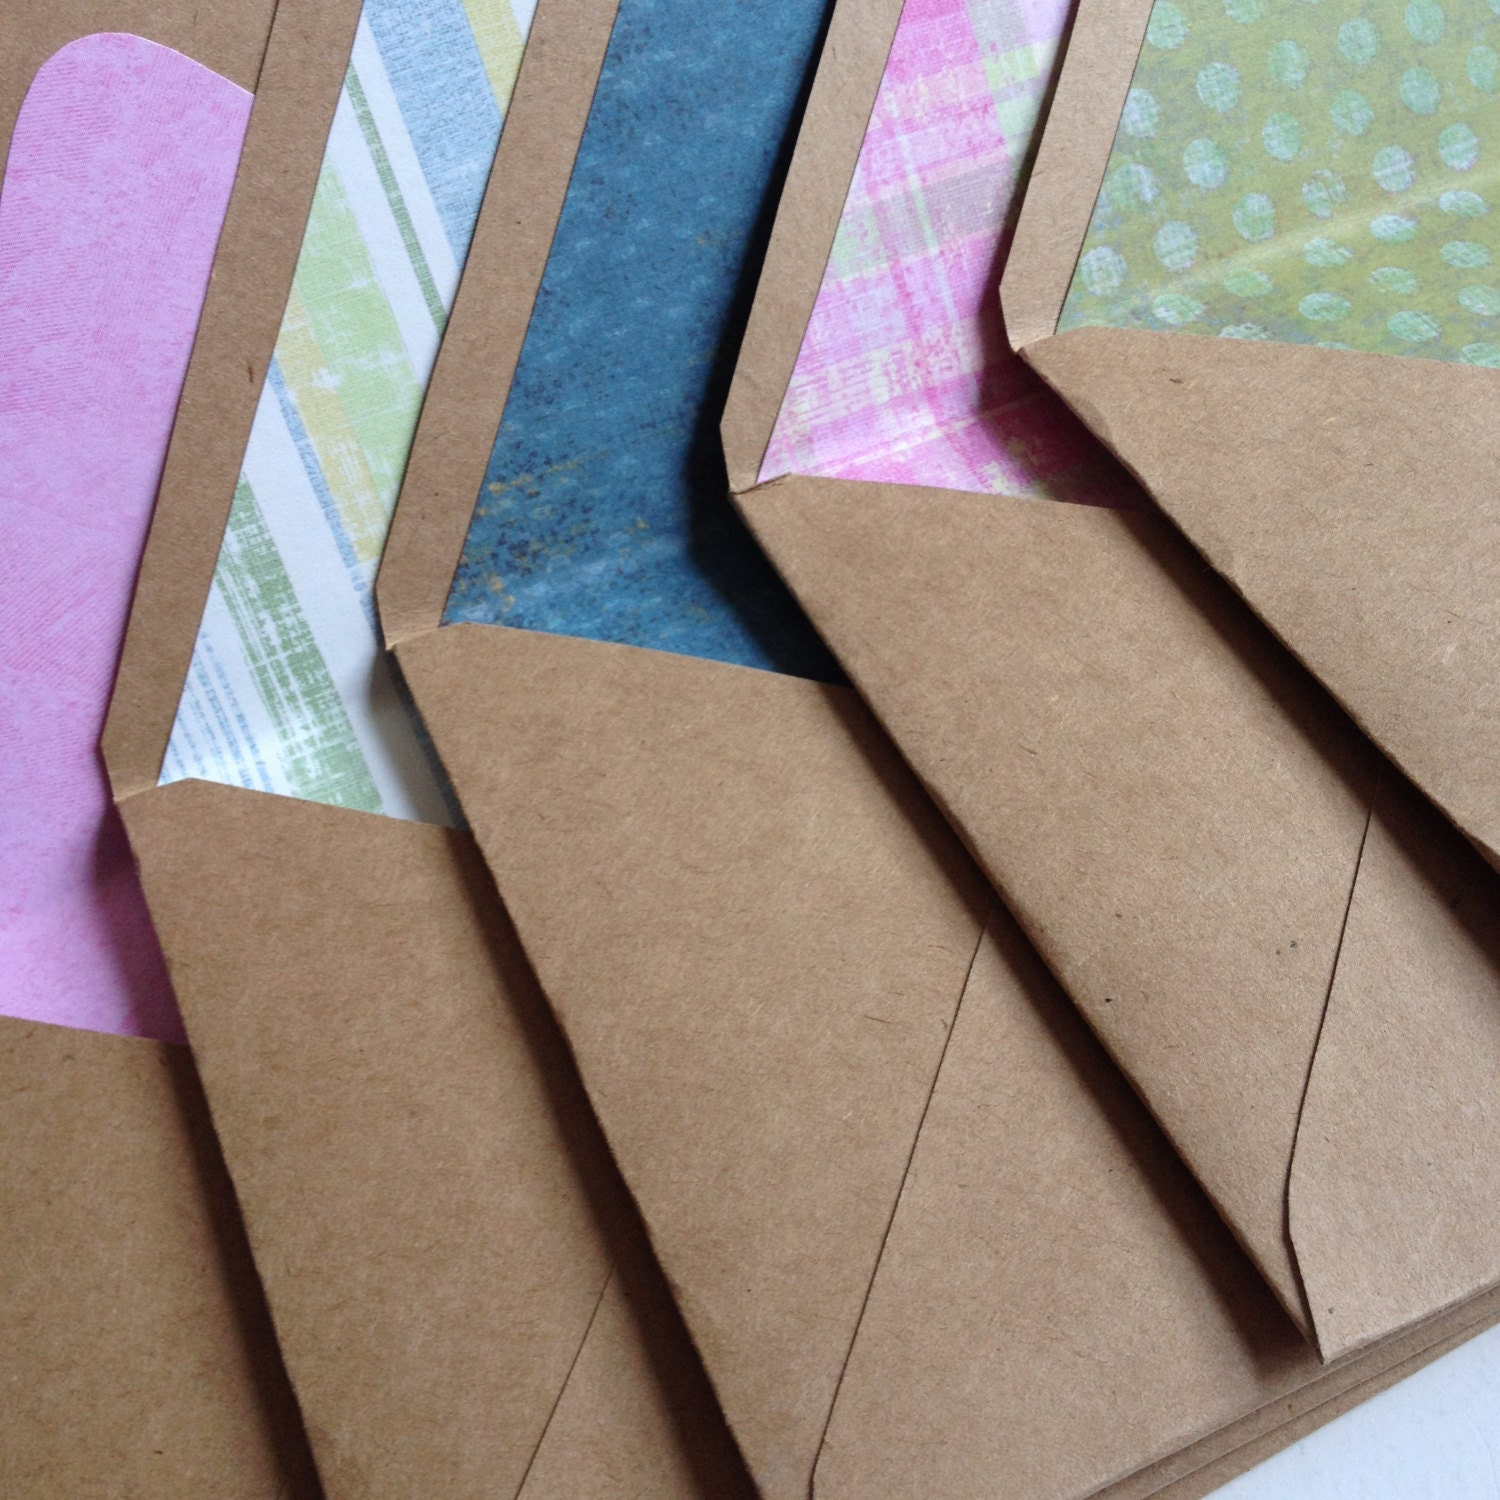 https://www.etsy.com/listing/201972390/set-of-5-handmade-kraft-envelopes-with?ref=shop_home_active_24